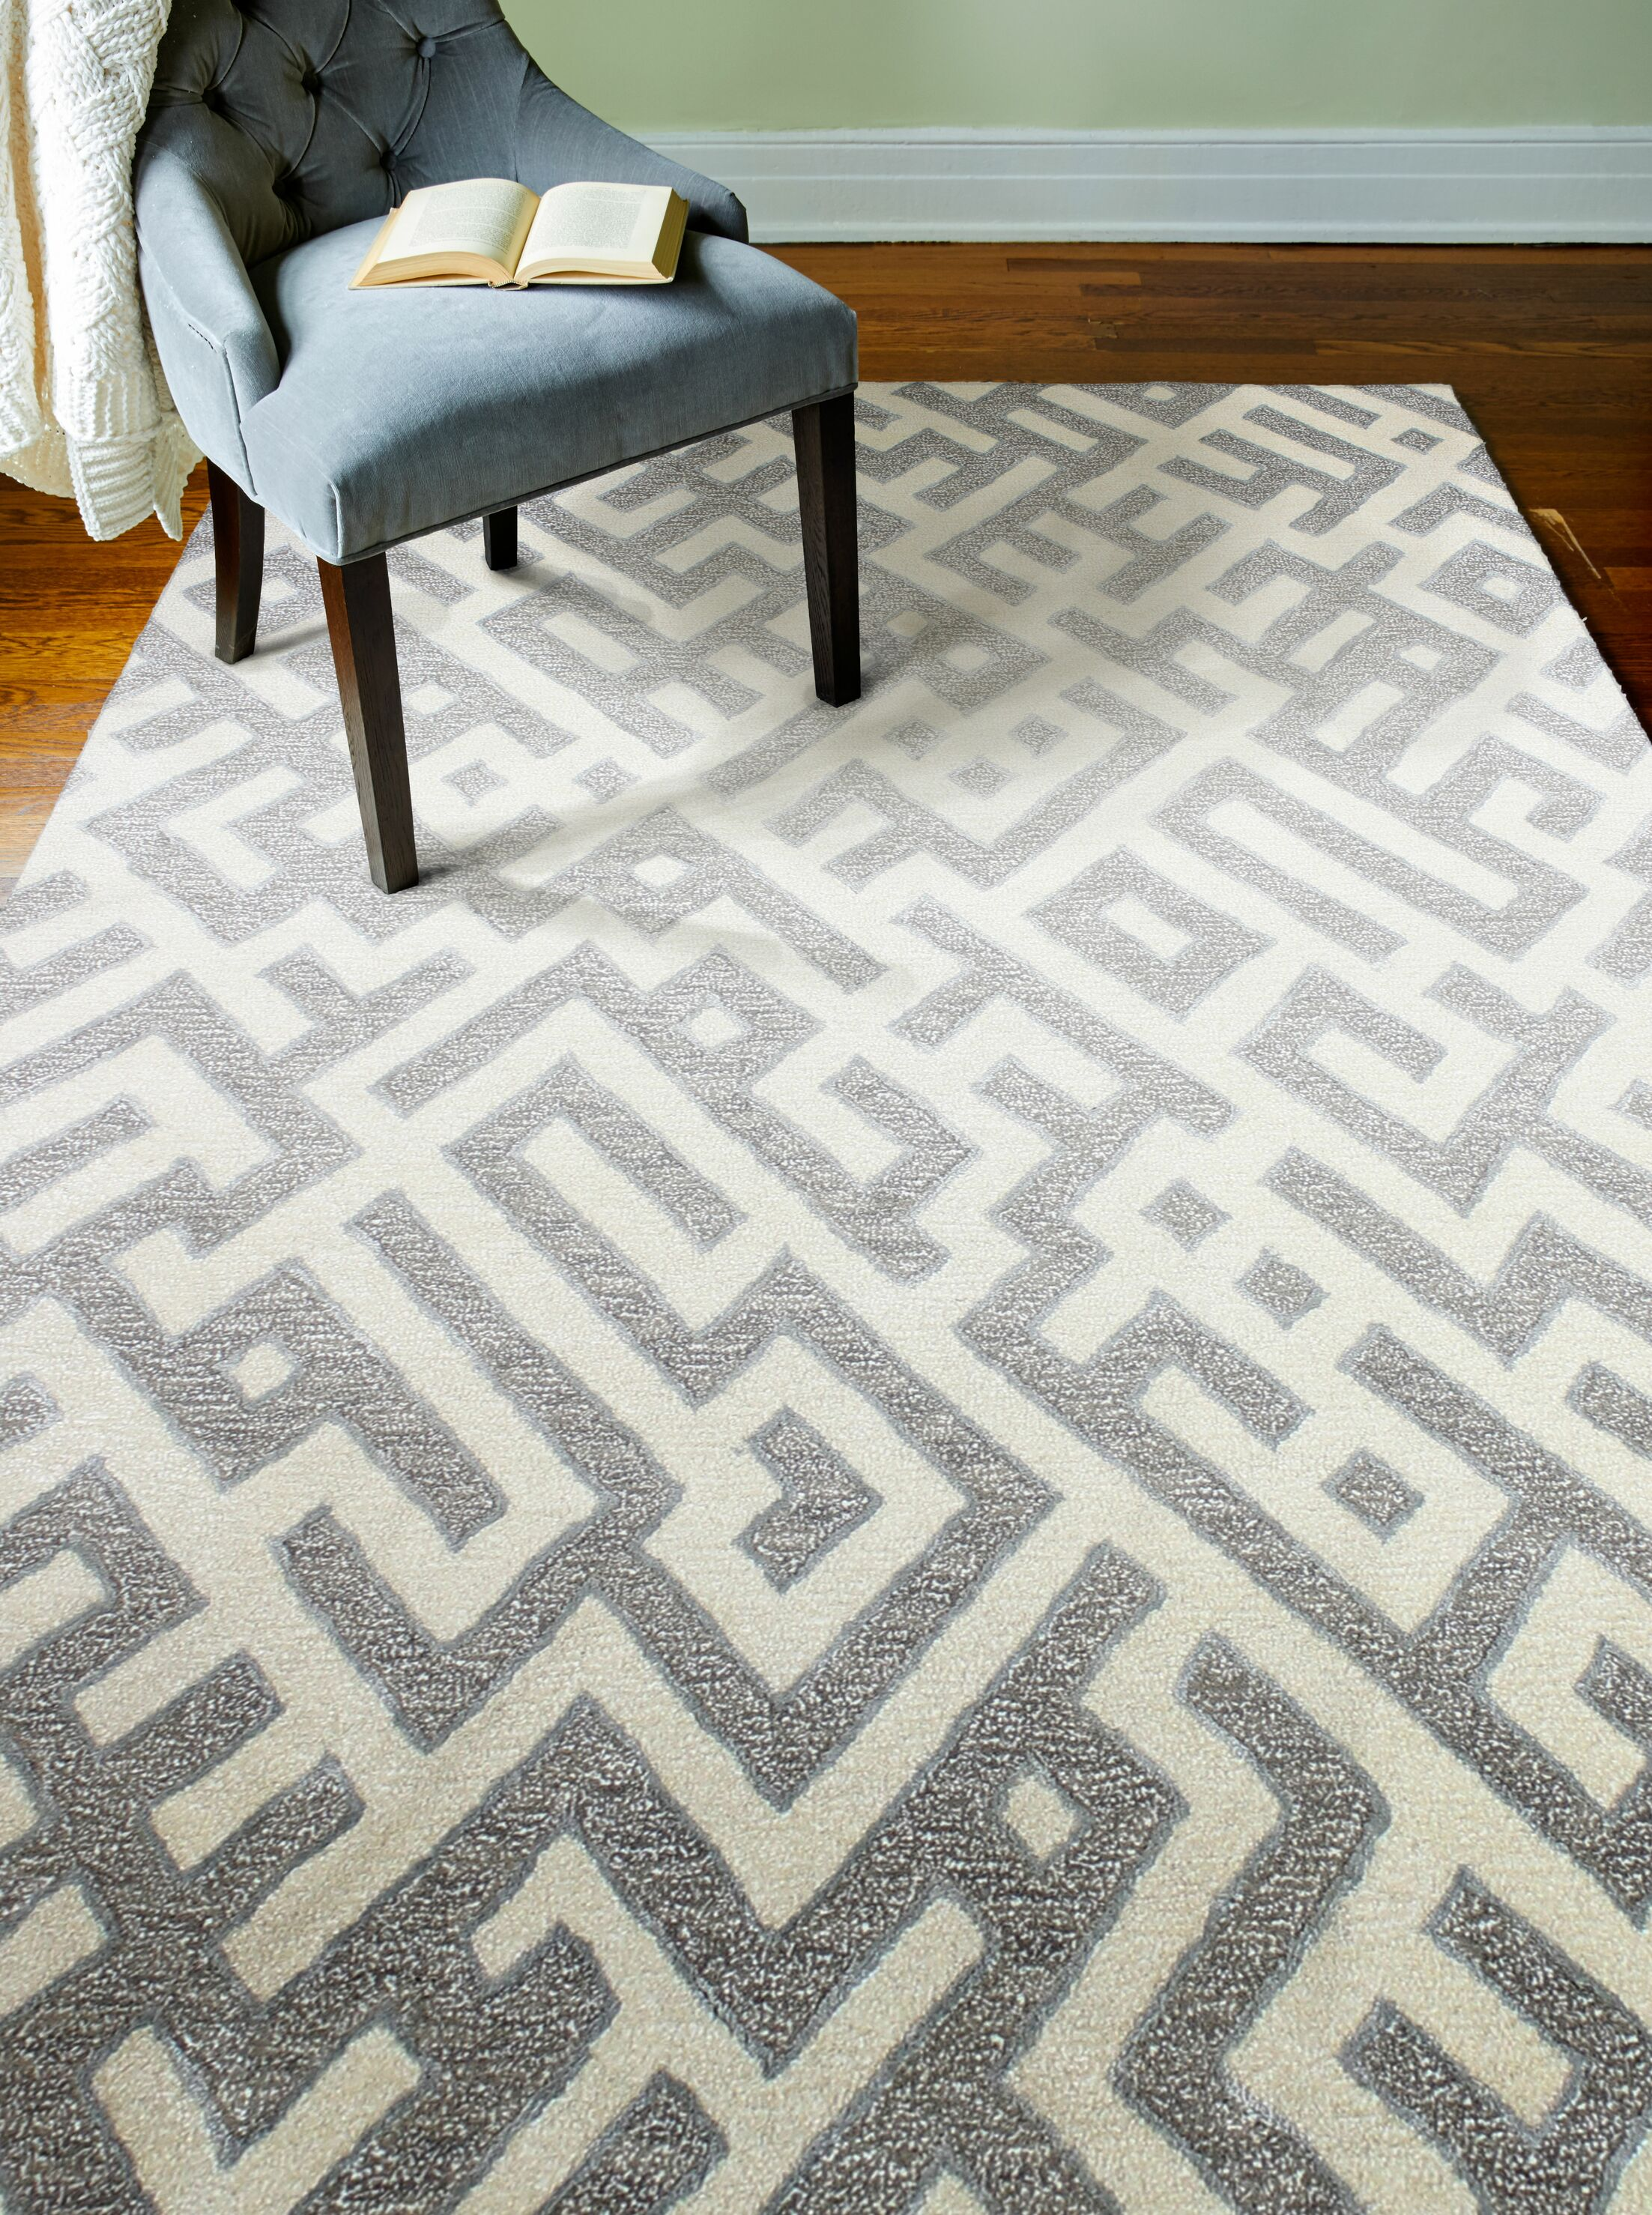 Lucus Hand-Tufted White/Taupe Area Rug Rug Size: Rectangle 3'6